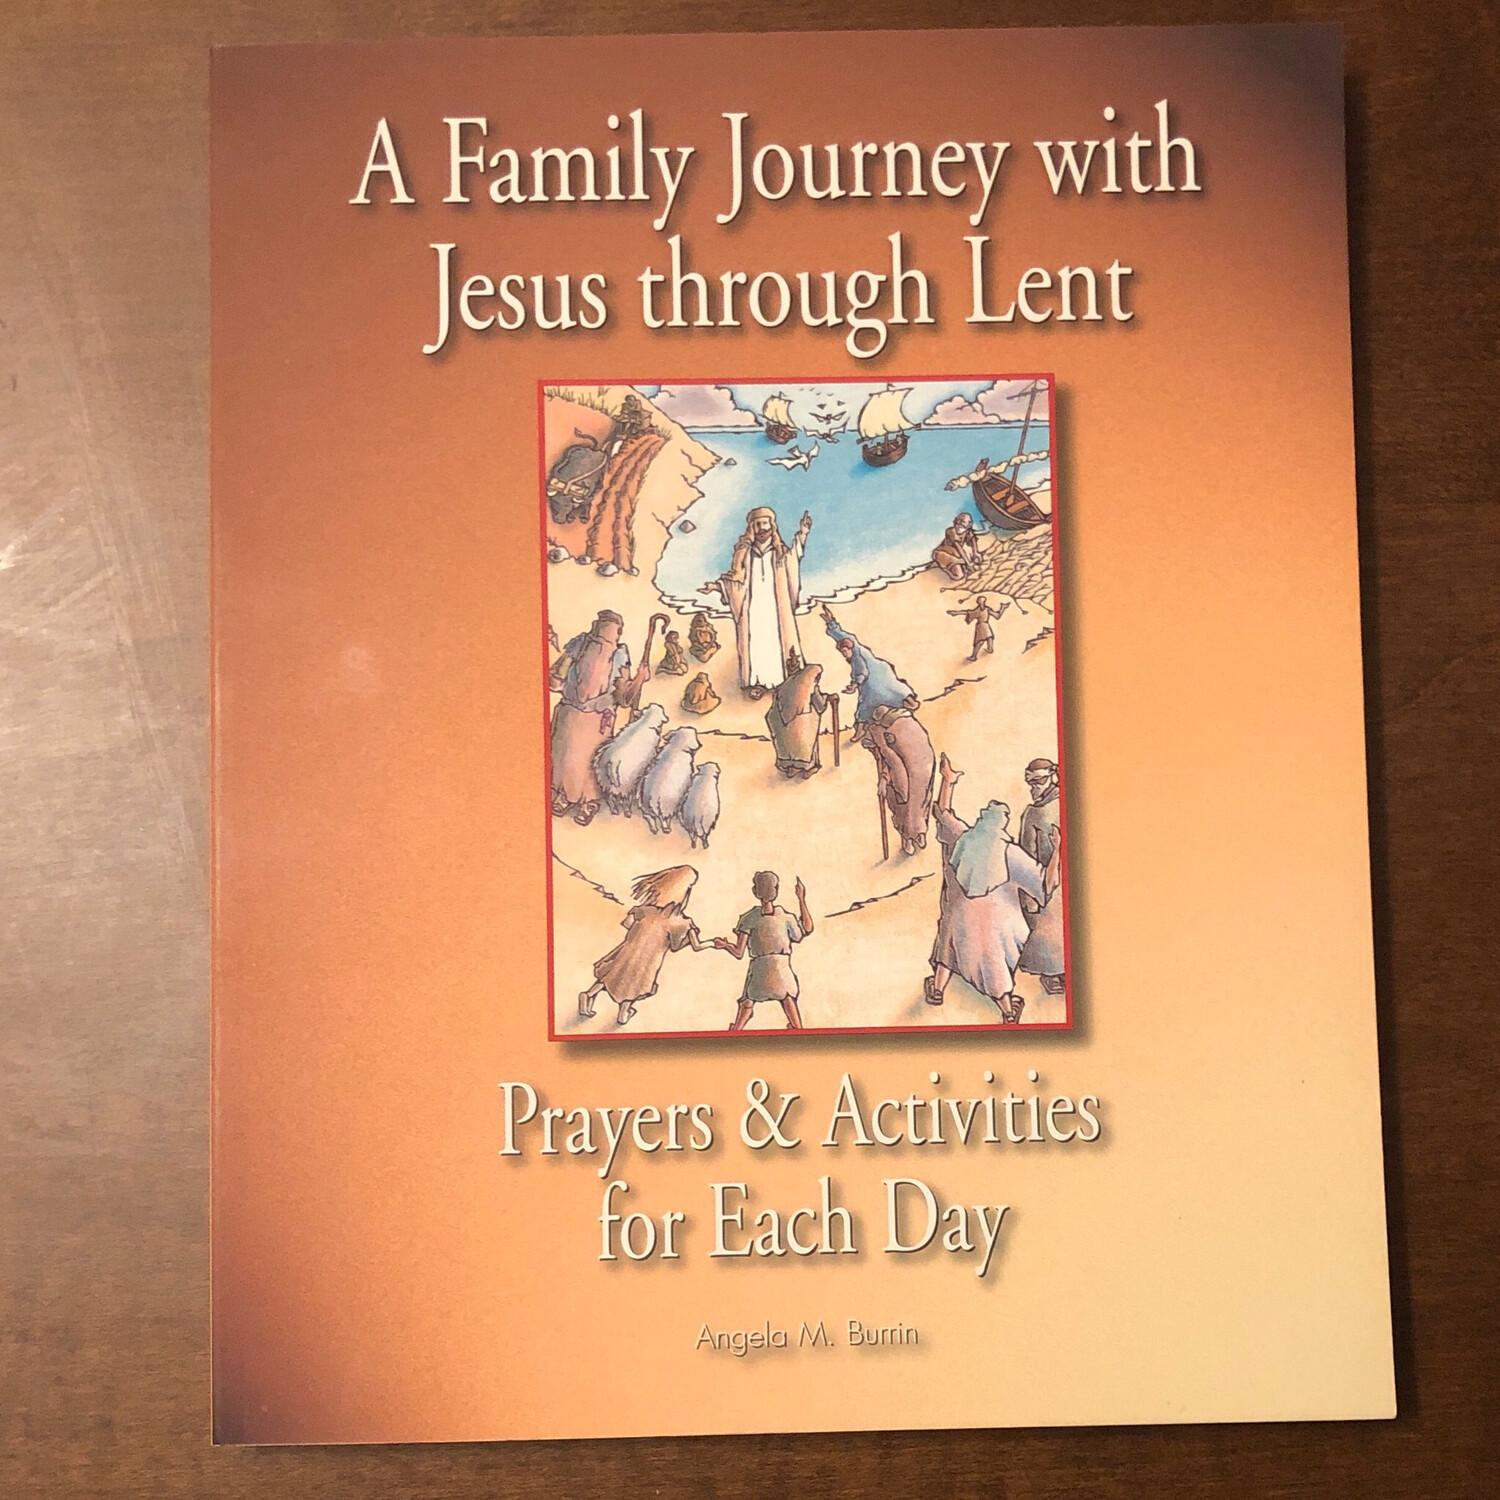 A Family Journey with Jesus through Lent: Prayers and Activities for Each Day by Angela M Burrin